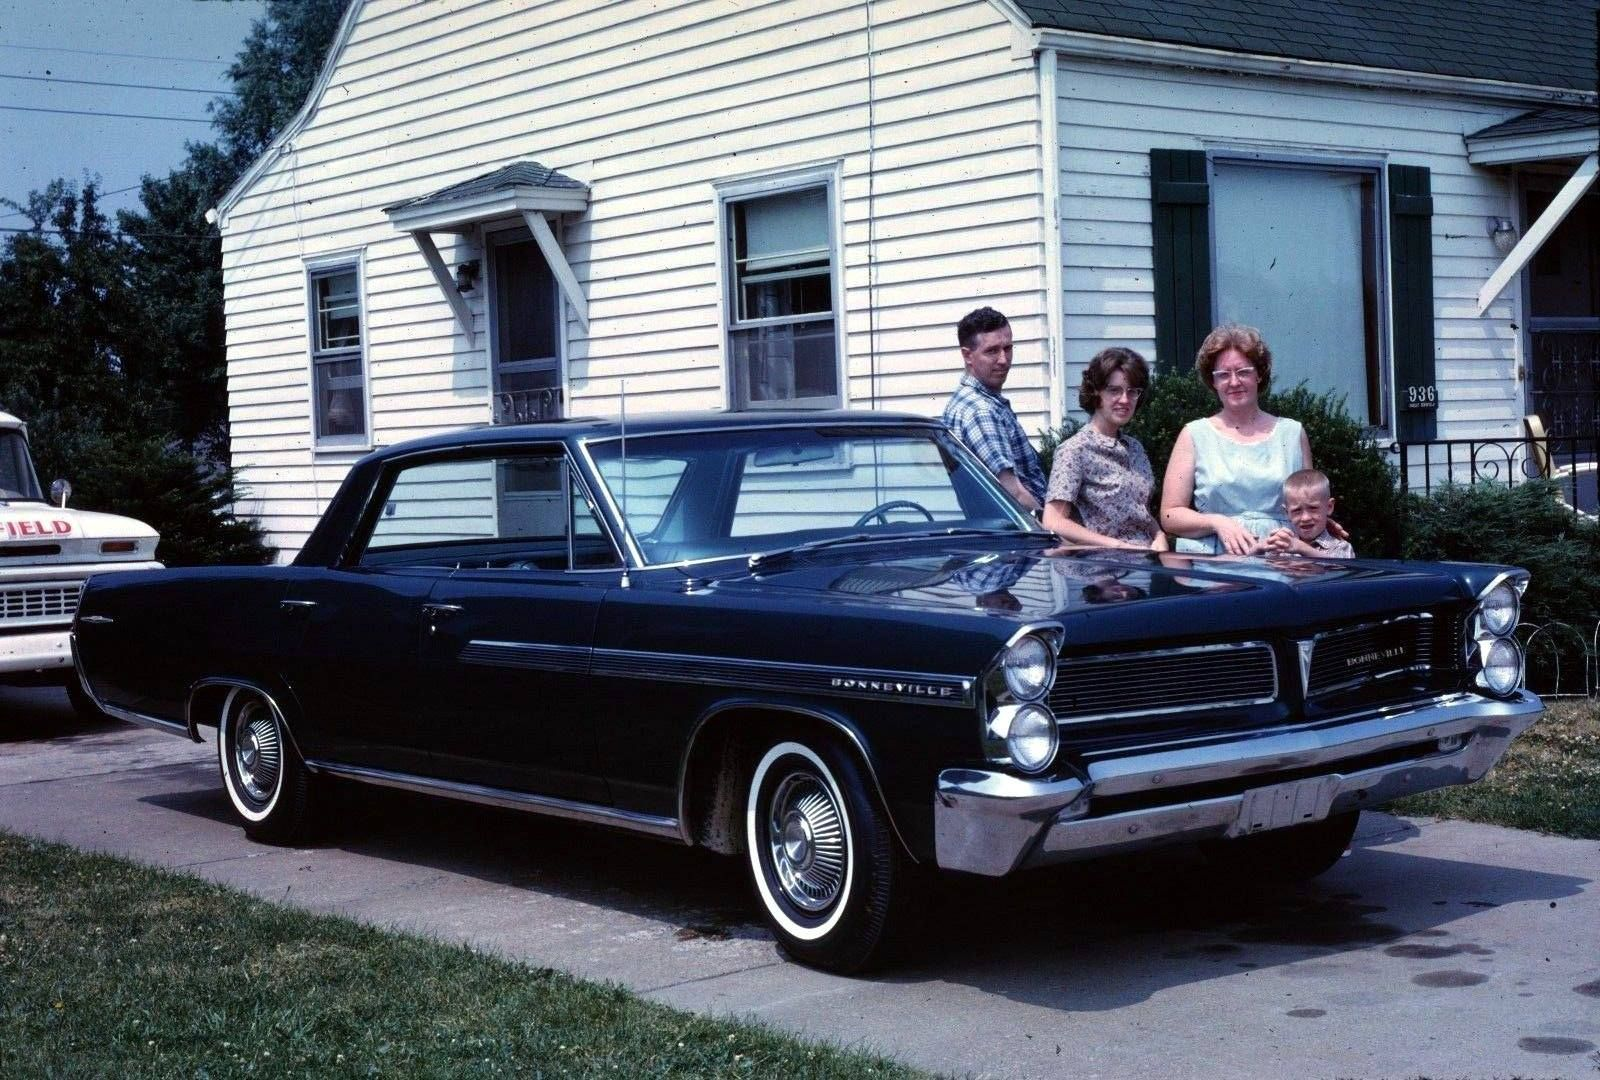 Family With Their New Pontiac Bonneville In Erie 1963 Pontiac Bonneville Bonneville Pontiac